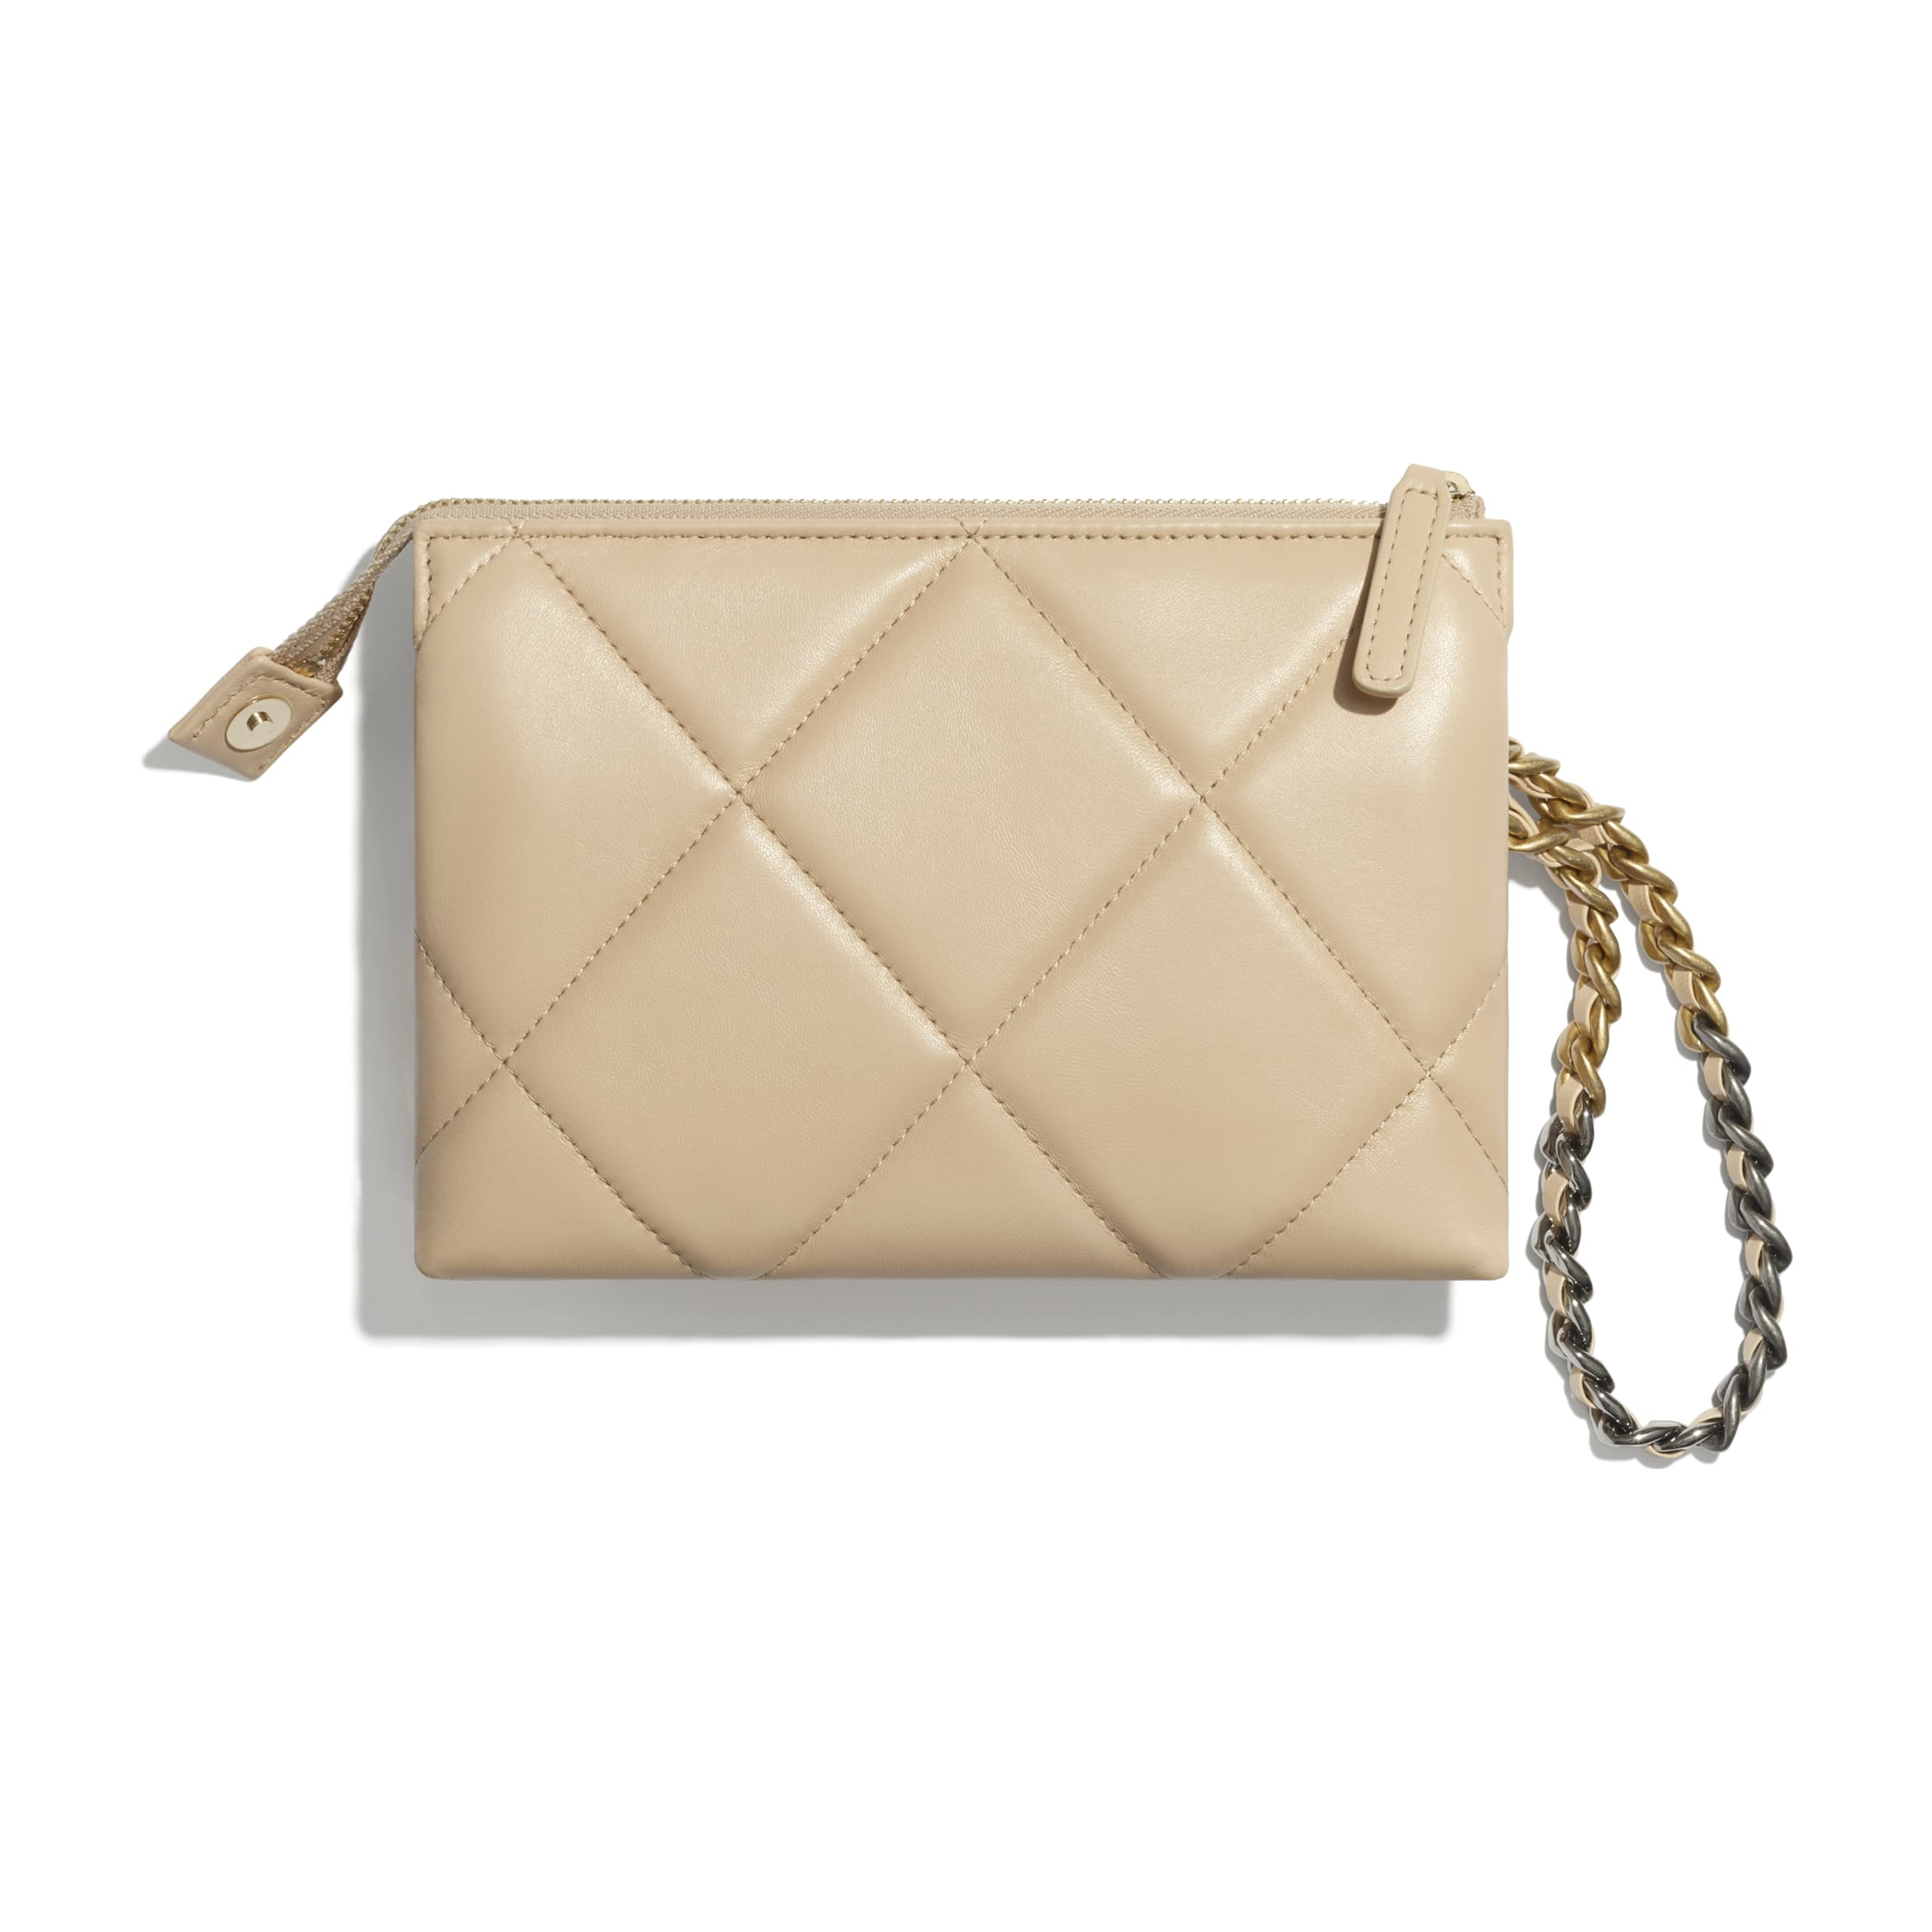 CHANEL 19 Small Pouch with Handle - Beige - Shiny Goatskin, Gold-Tone, Silver-Tone & Ruthenium-Finish Metal - CHANEL - Alternative view - see standard sized version